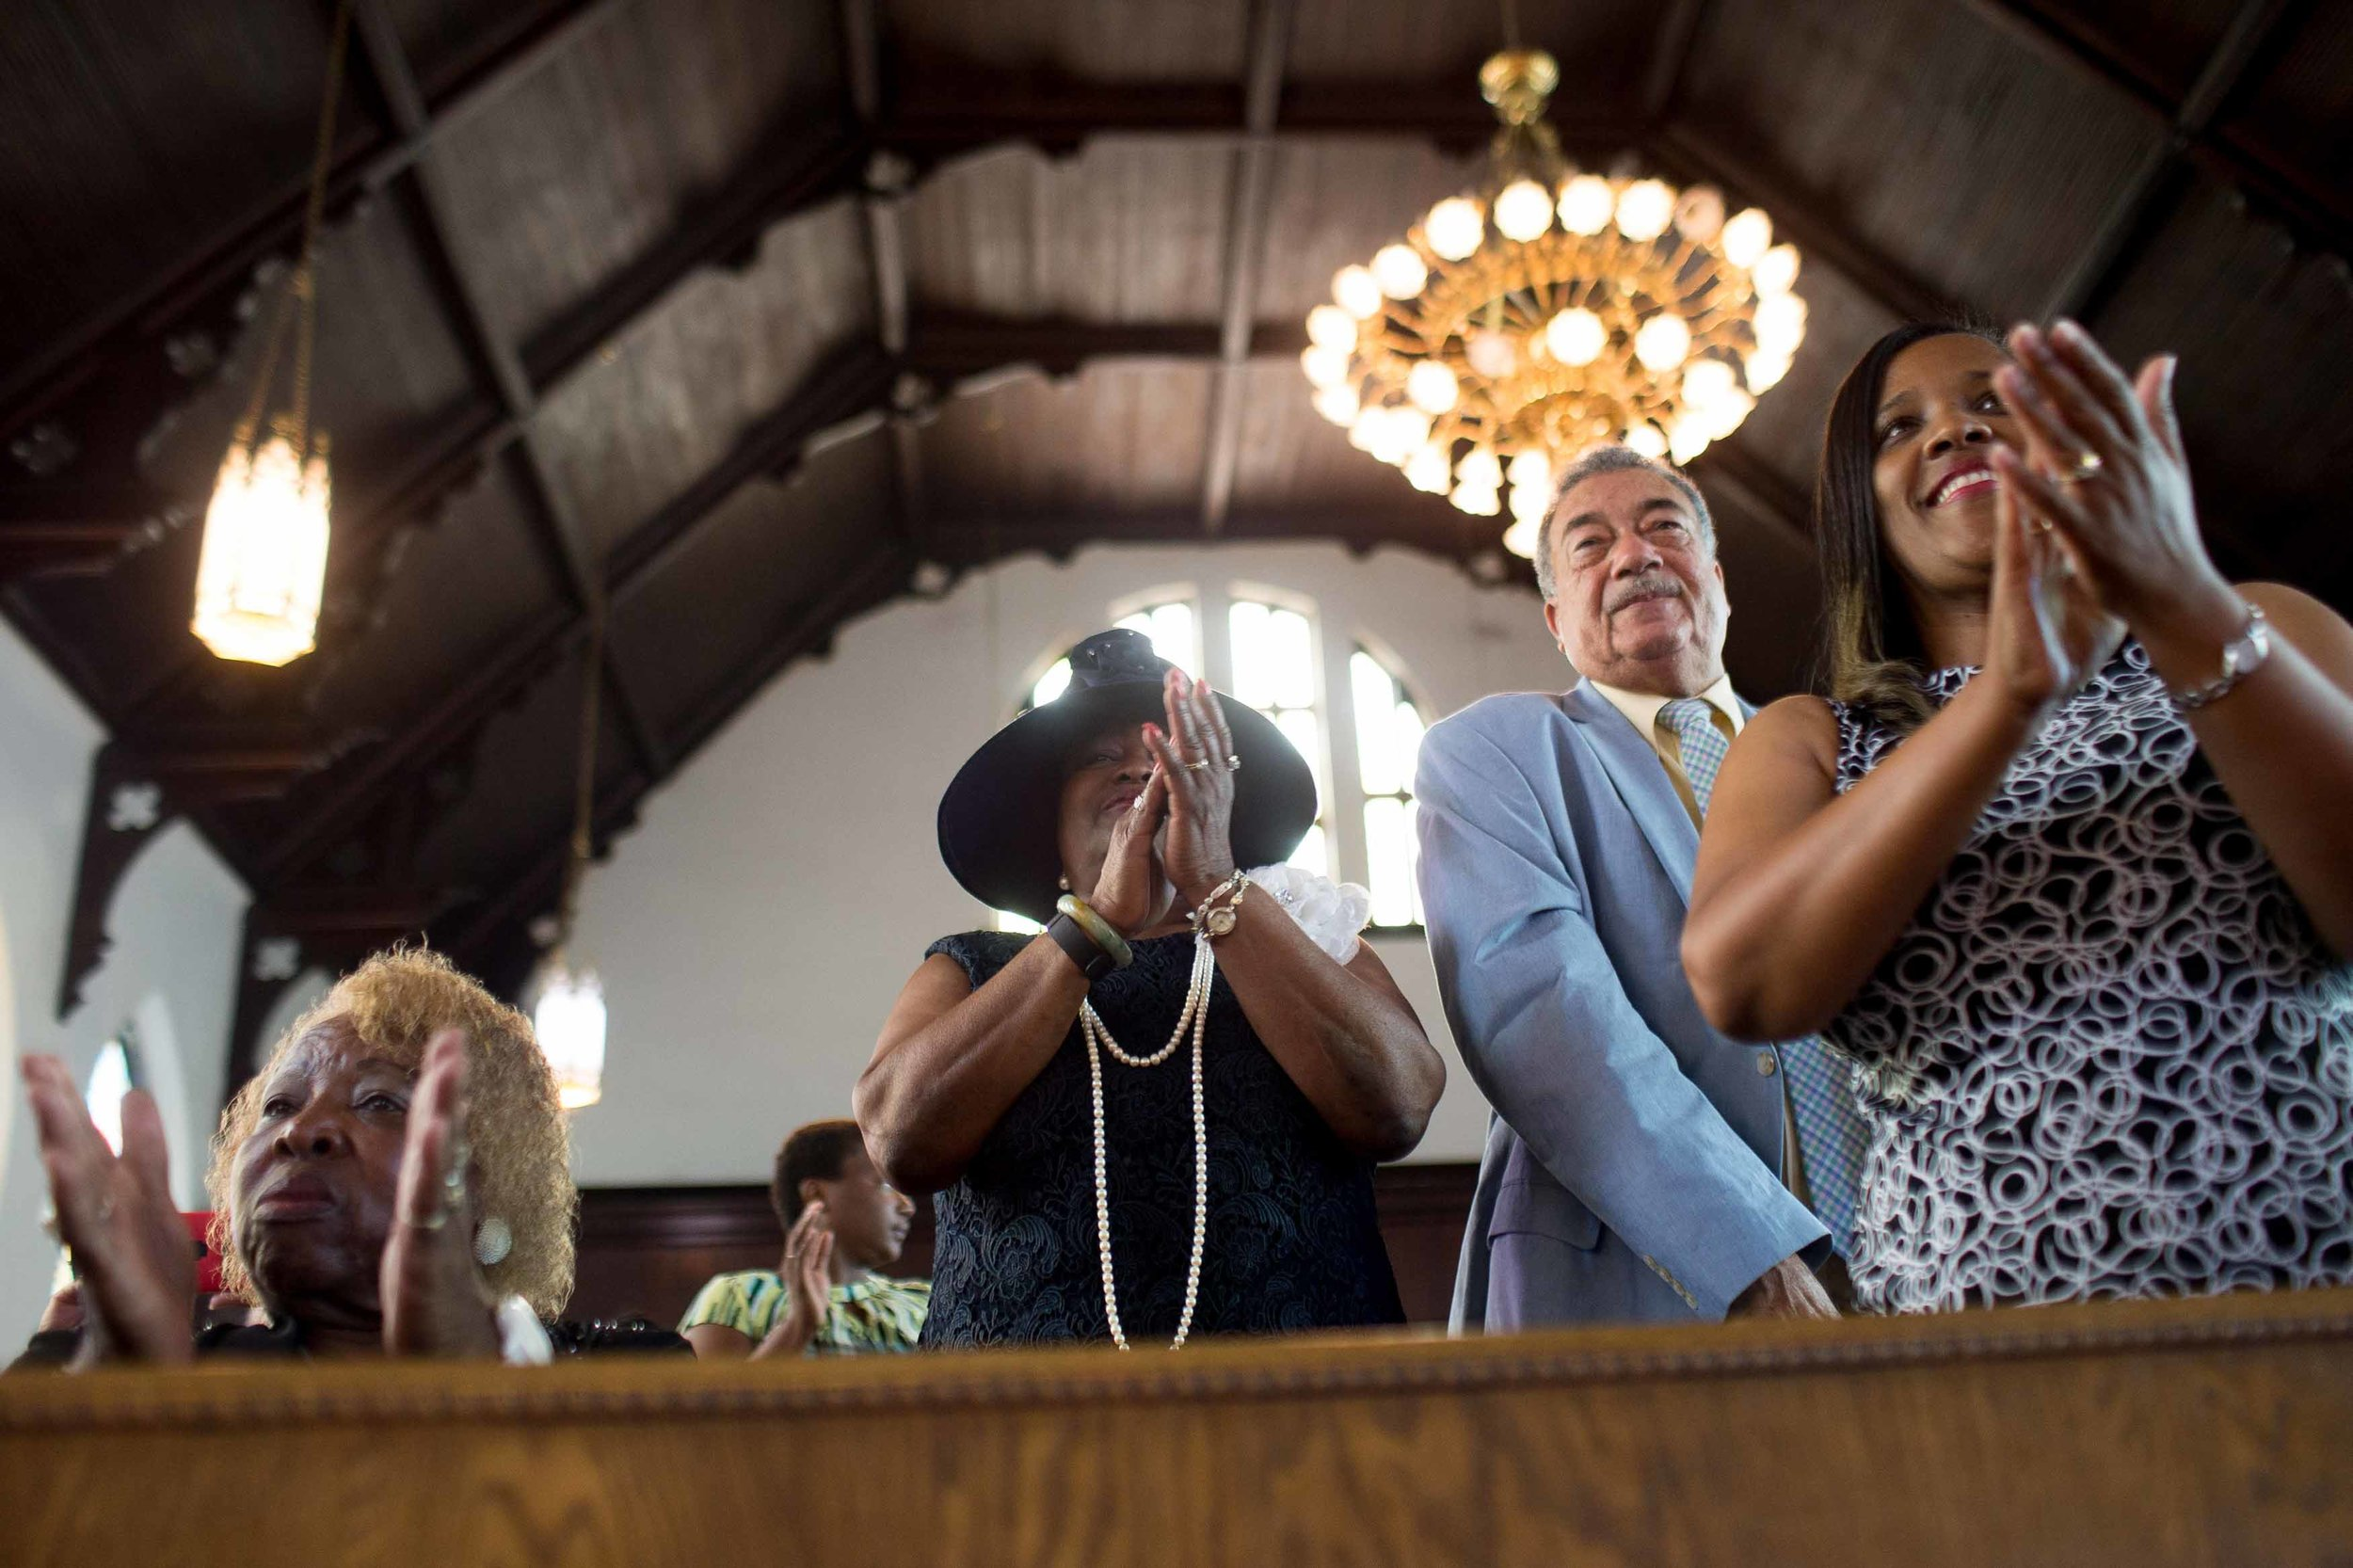 Parishioners clap during a worship service at the First Baptist Church, a predominantly African-American congregation, in Macon, Ga., on Sunday, July 10, 2016. There are two First Baptist Churches in Macon _ one black and one white. (AP Photo/Branden Camp)